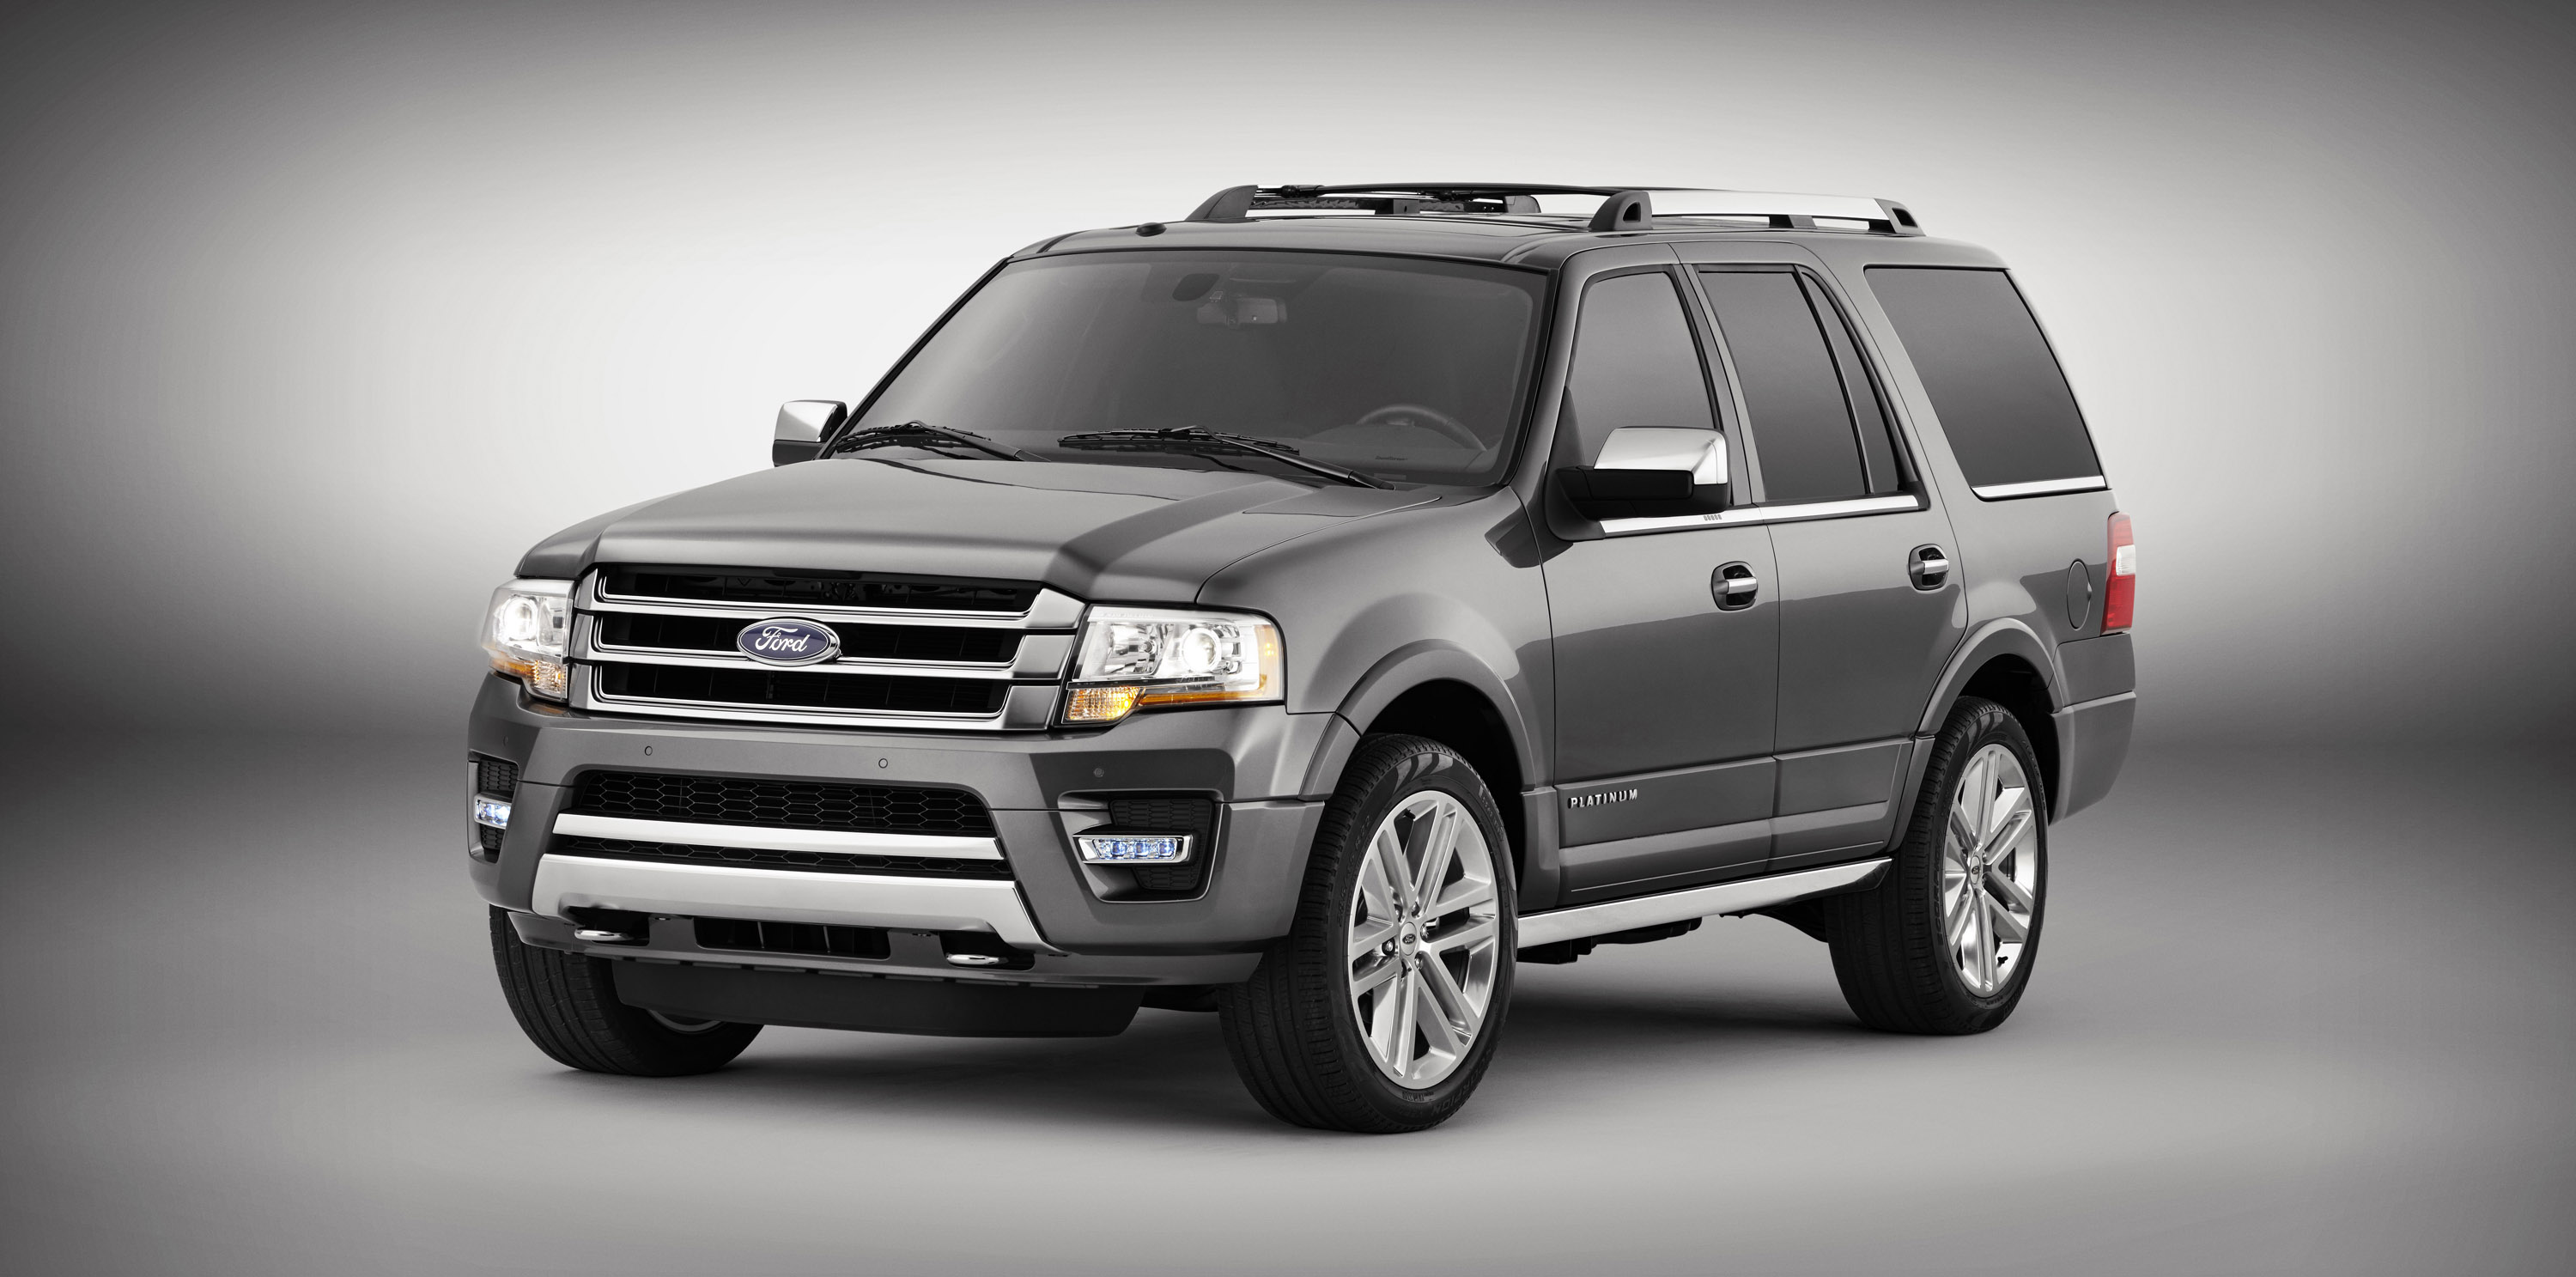 Ford Expedition photo #2